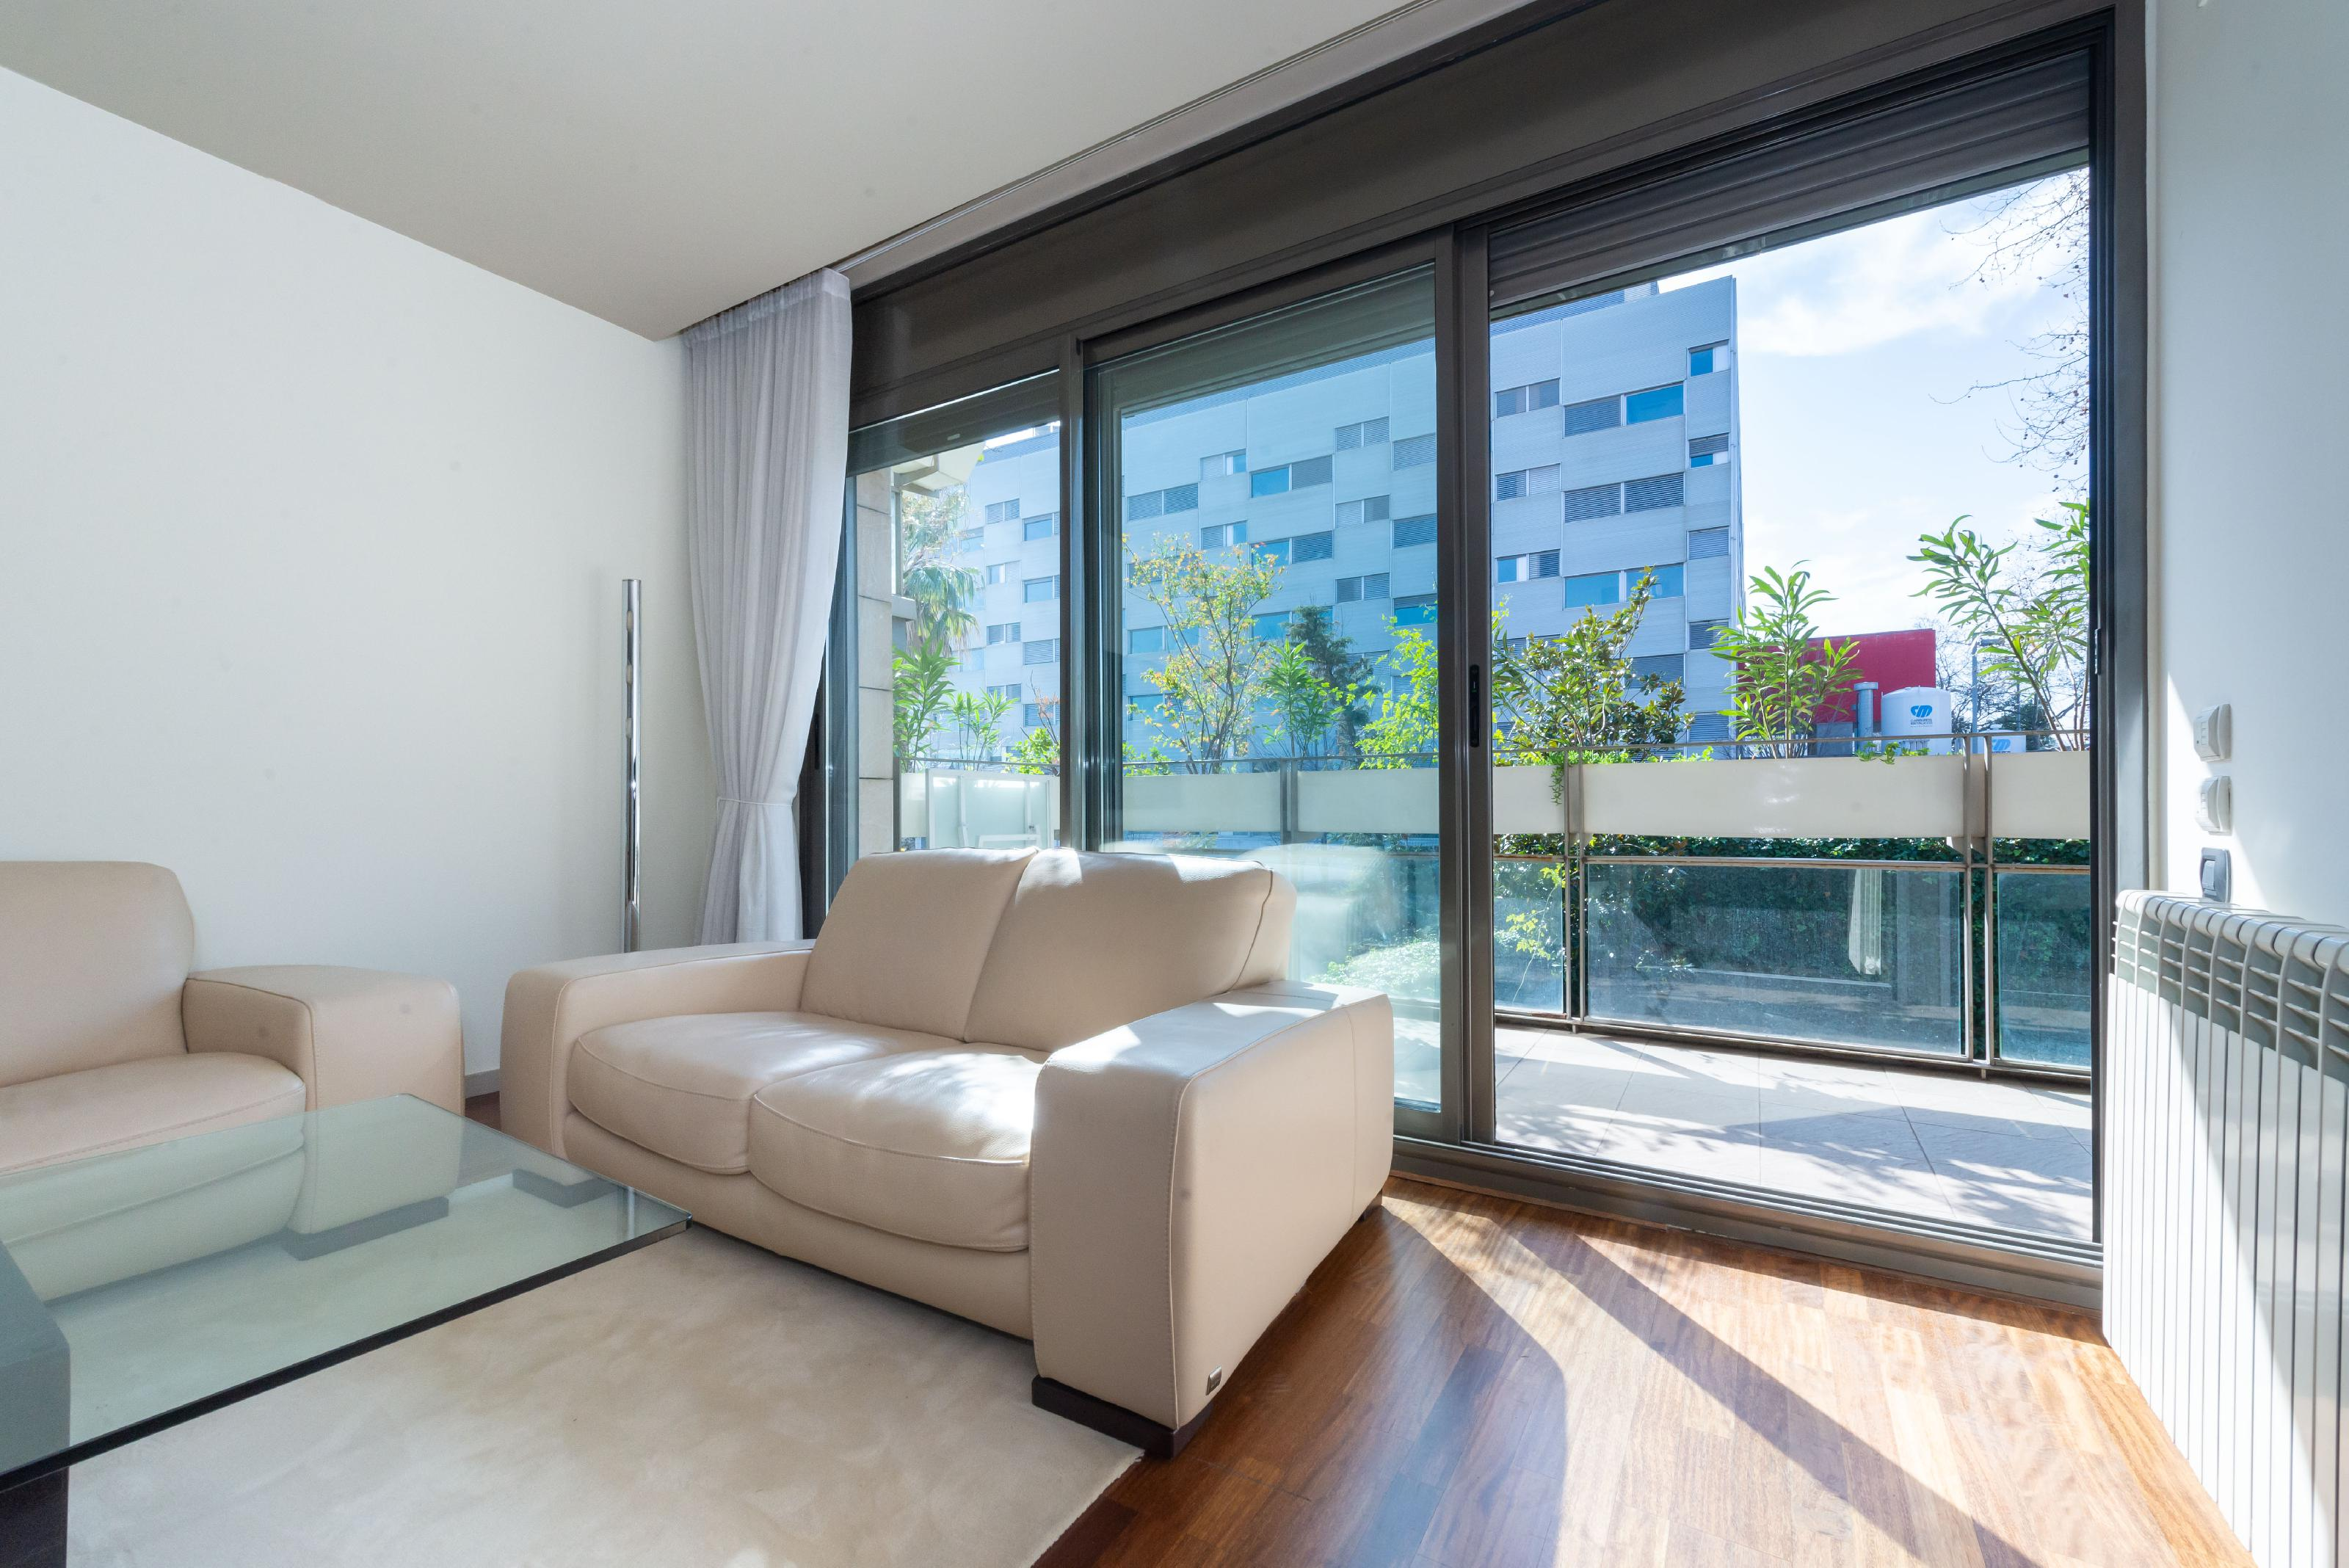 246682 Flat for sale in Gràcia, Vallcarca and Els Penitents 7